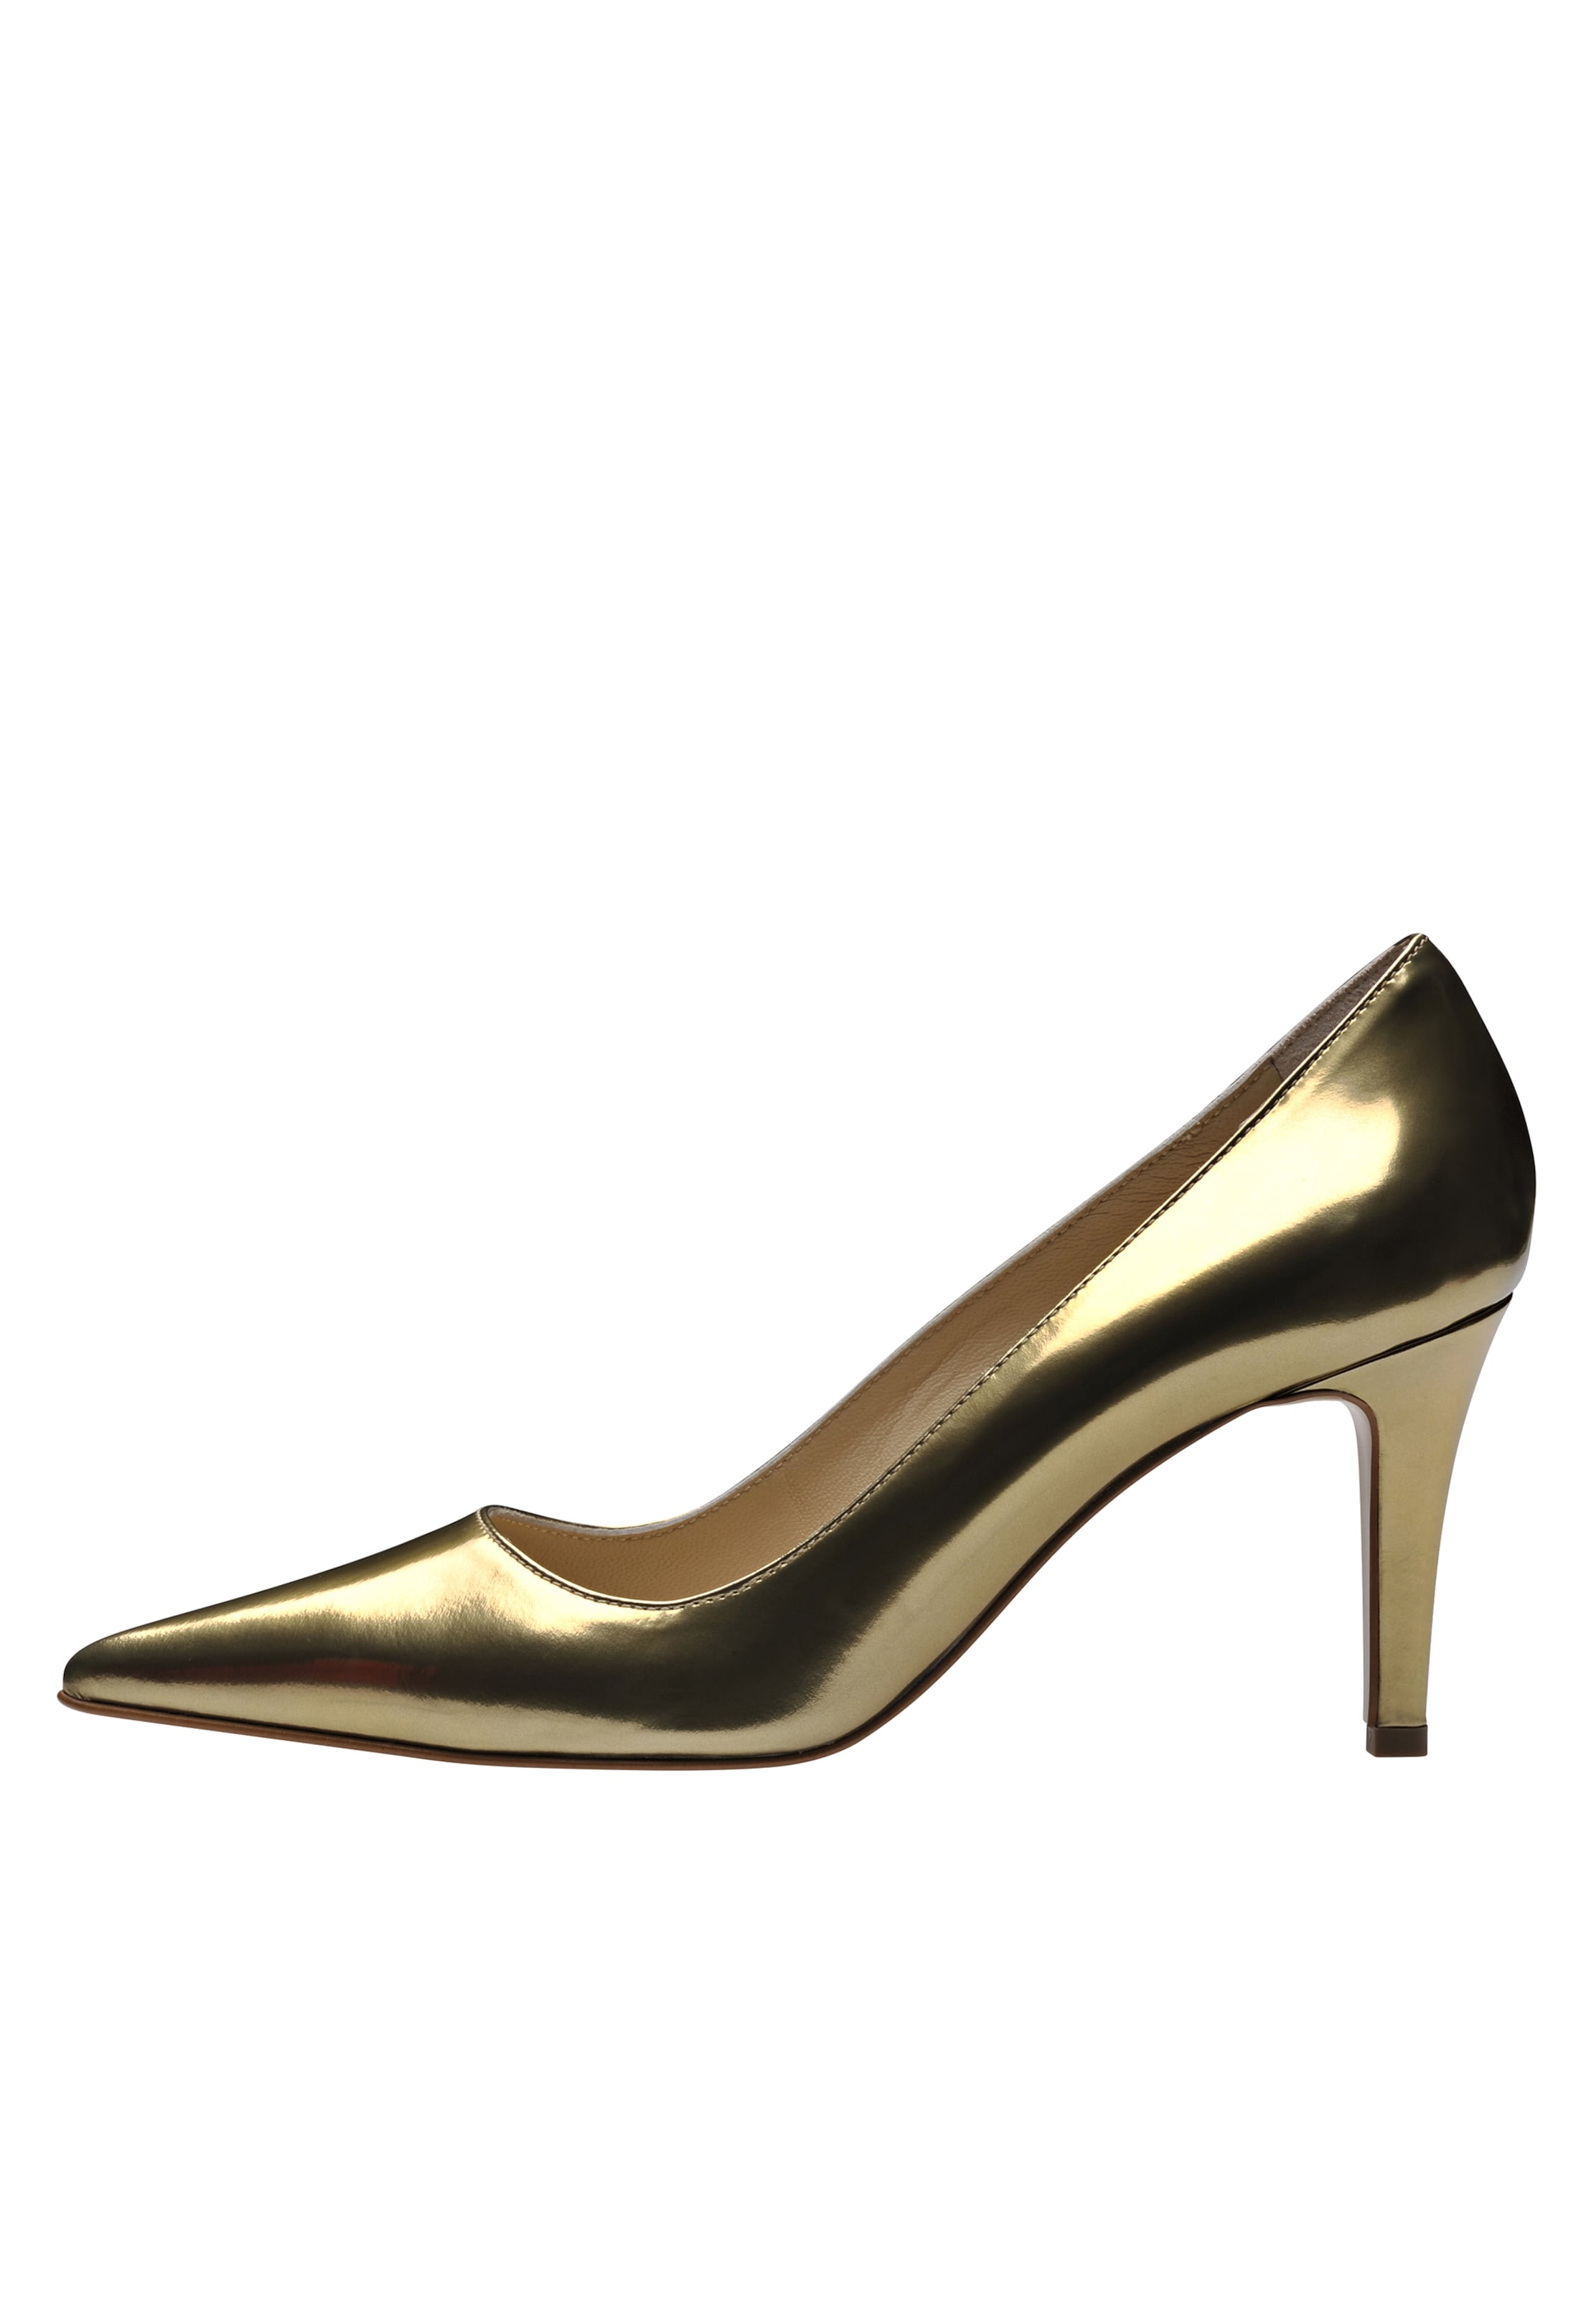 Pumps Evita Gold Evita Pumps In Gold Evita In Gold In Pumps USzVqMp